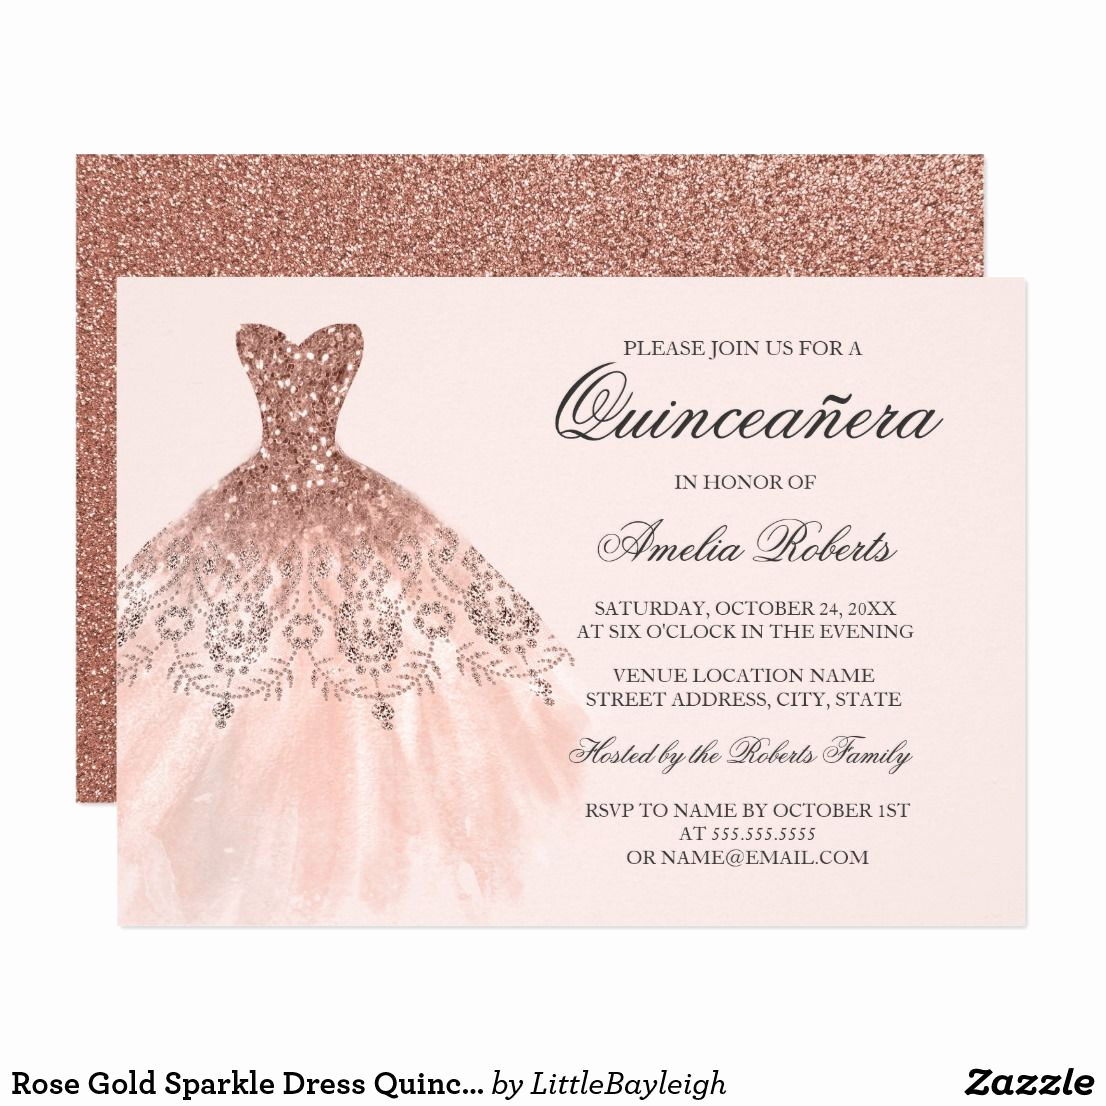 Quinceanera Invitation Ideas Pinterest Unique Rose Gold Sparkle Dress Quinceanera Invitation